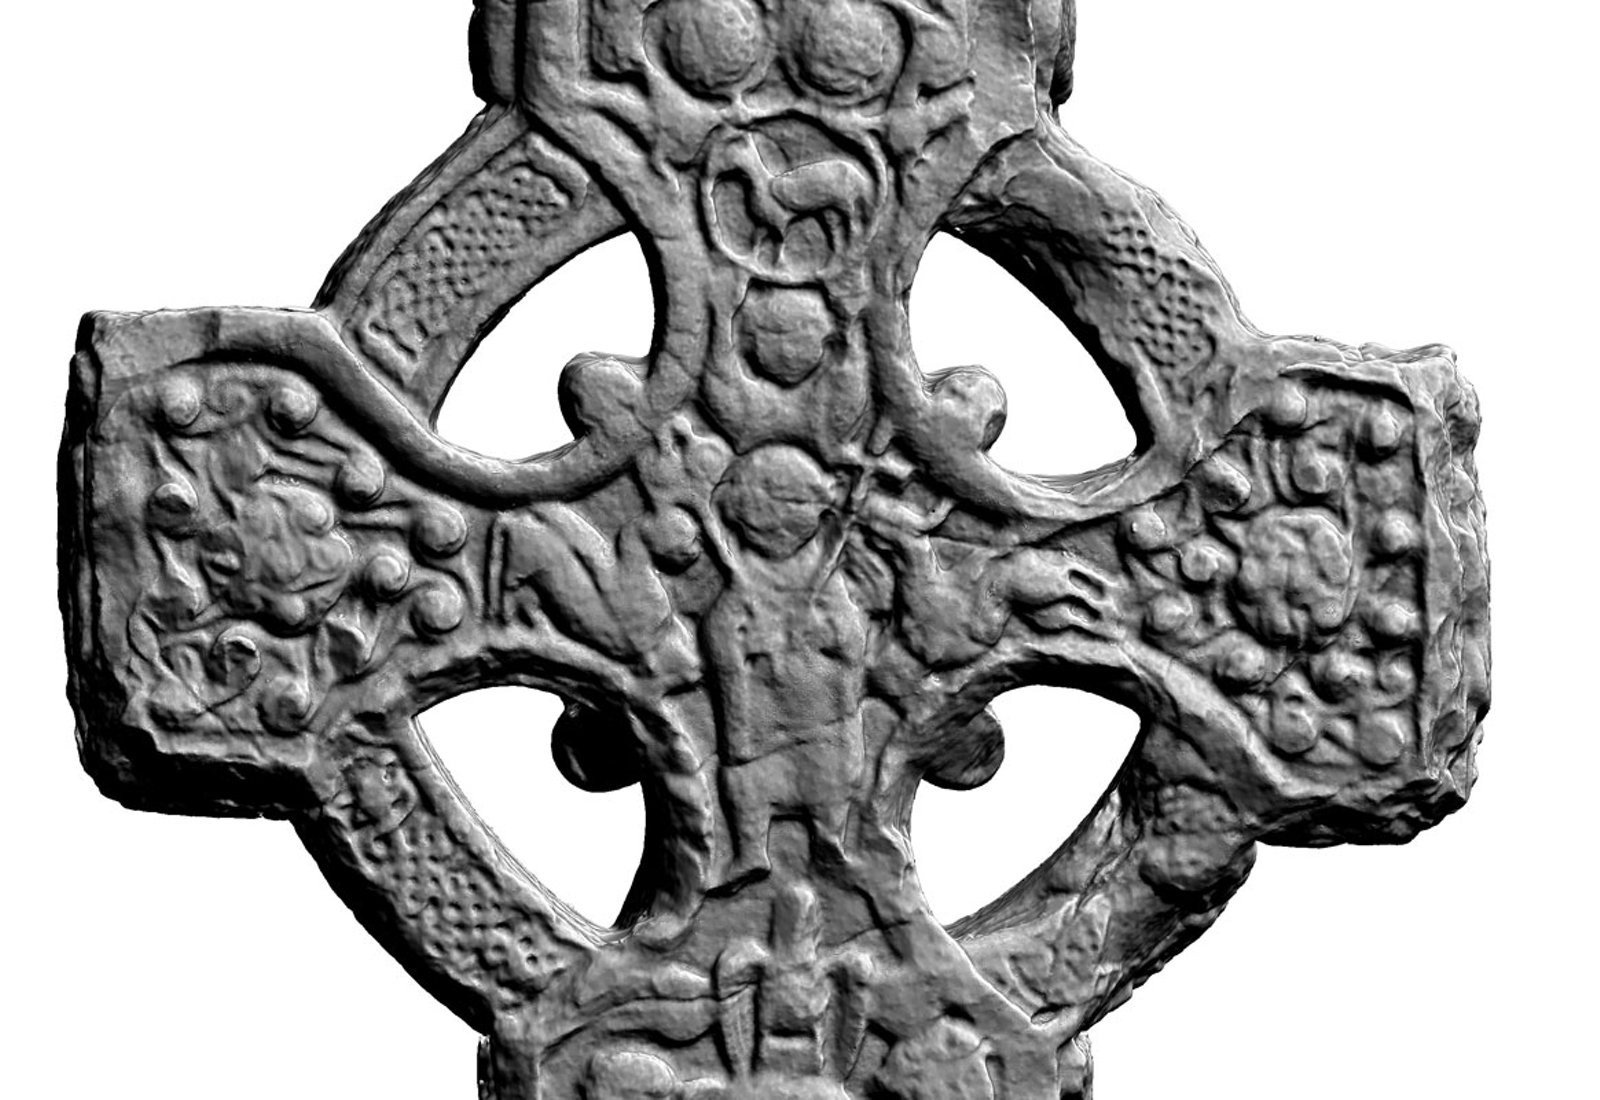 KELLS_SOUTH_CROSS_WEST_FACE_HEAD_CENTRE_WEB